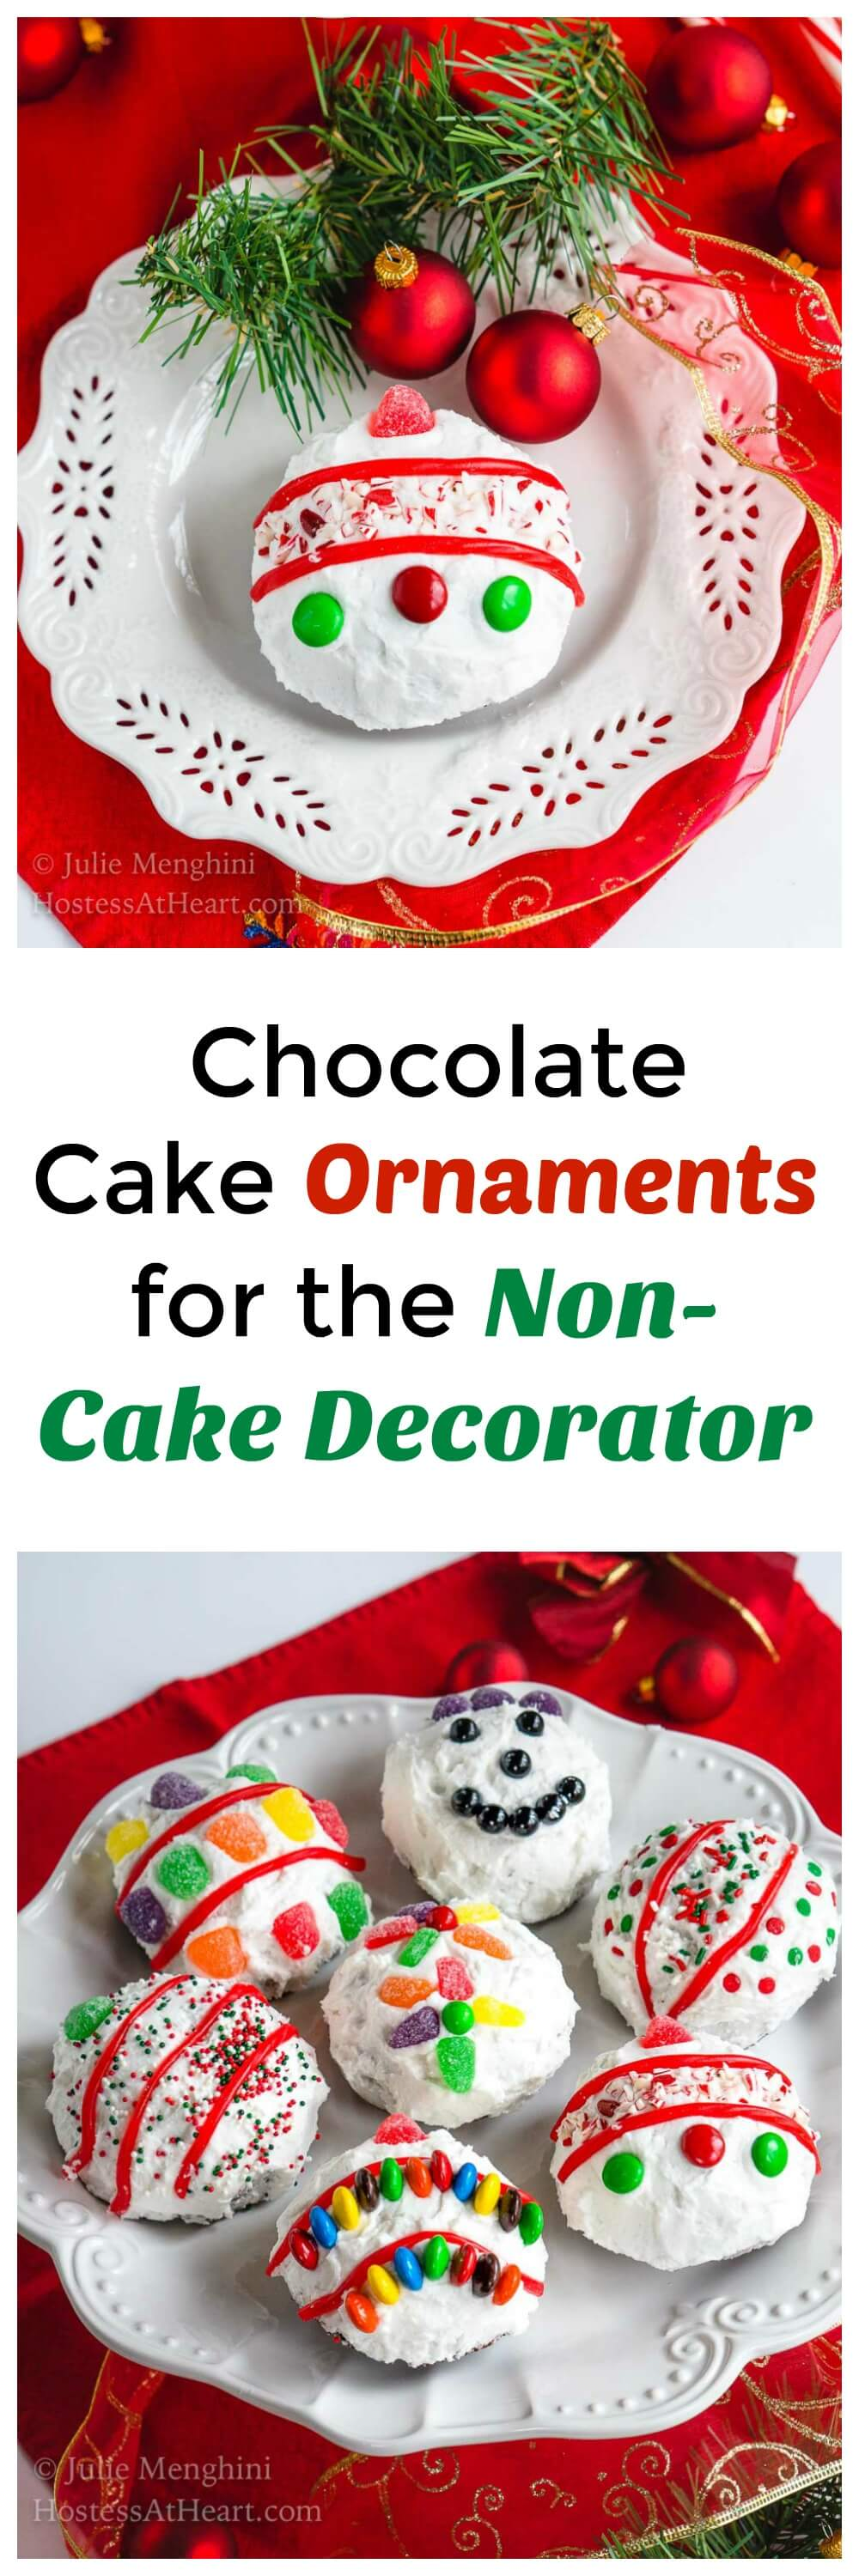 If you aren't into cake decorating but love the results, these Chocolate Cake Ornaments are for you!  They're also fun for the Kiddos to help make. #HolidayDesserts #ChocolateDessert | Chocolate Cupcakes | Cake Decorating | Cooking for kids